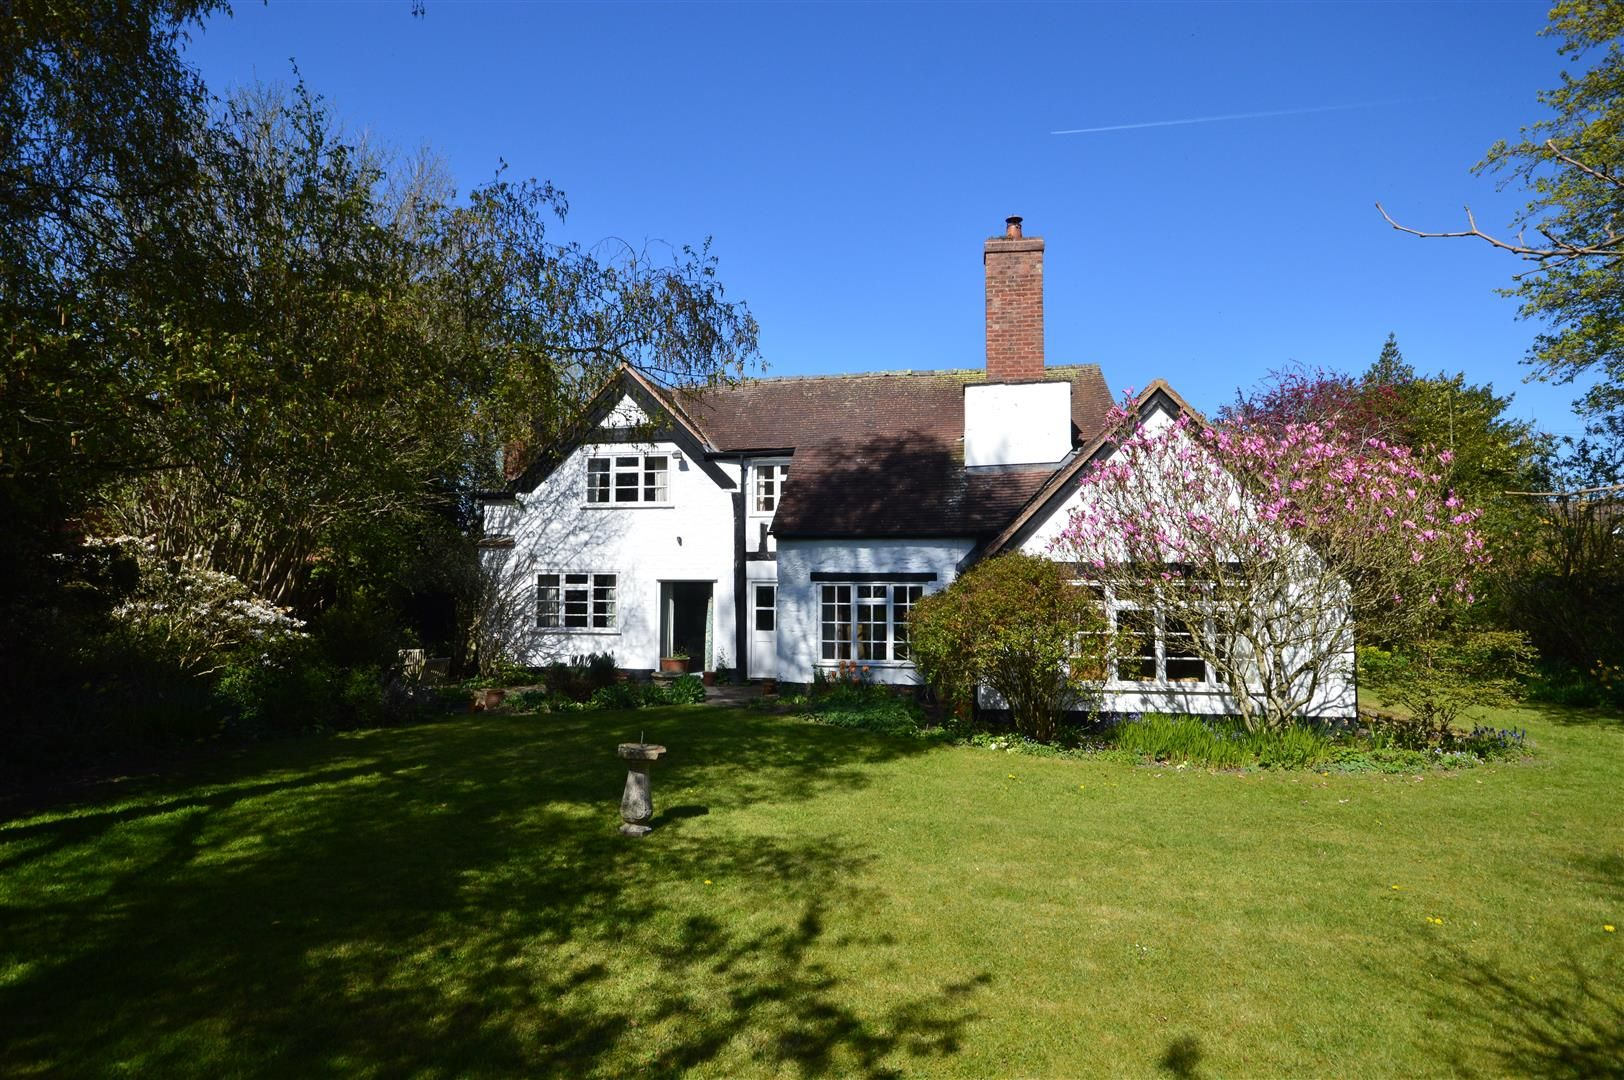 4 bed detached for sale in Kingsland, HR6